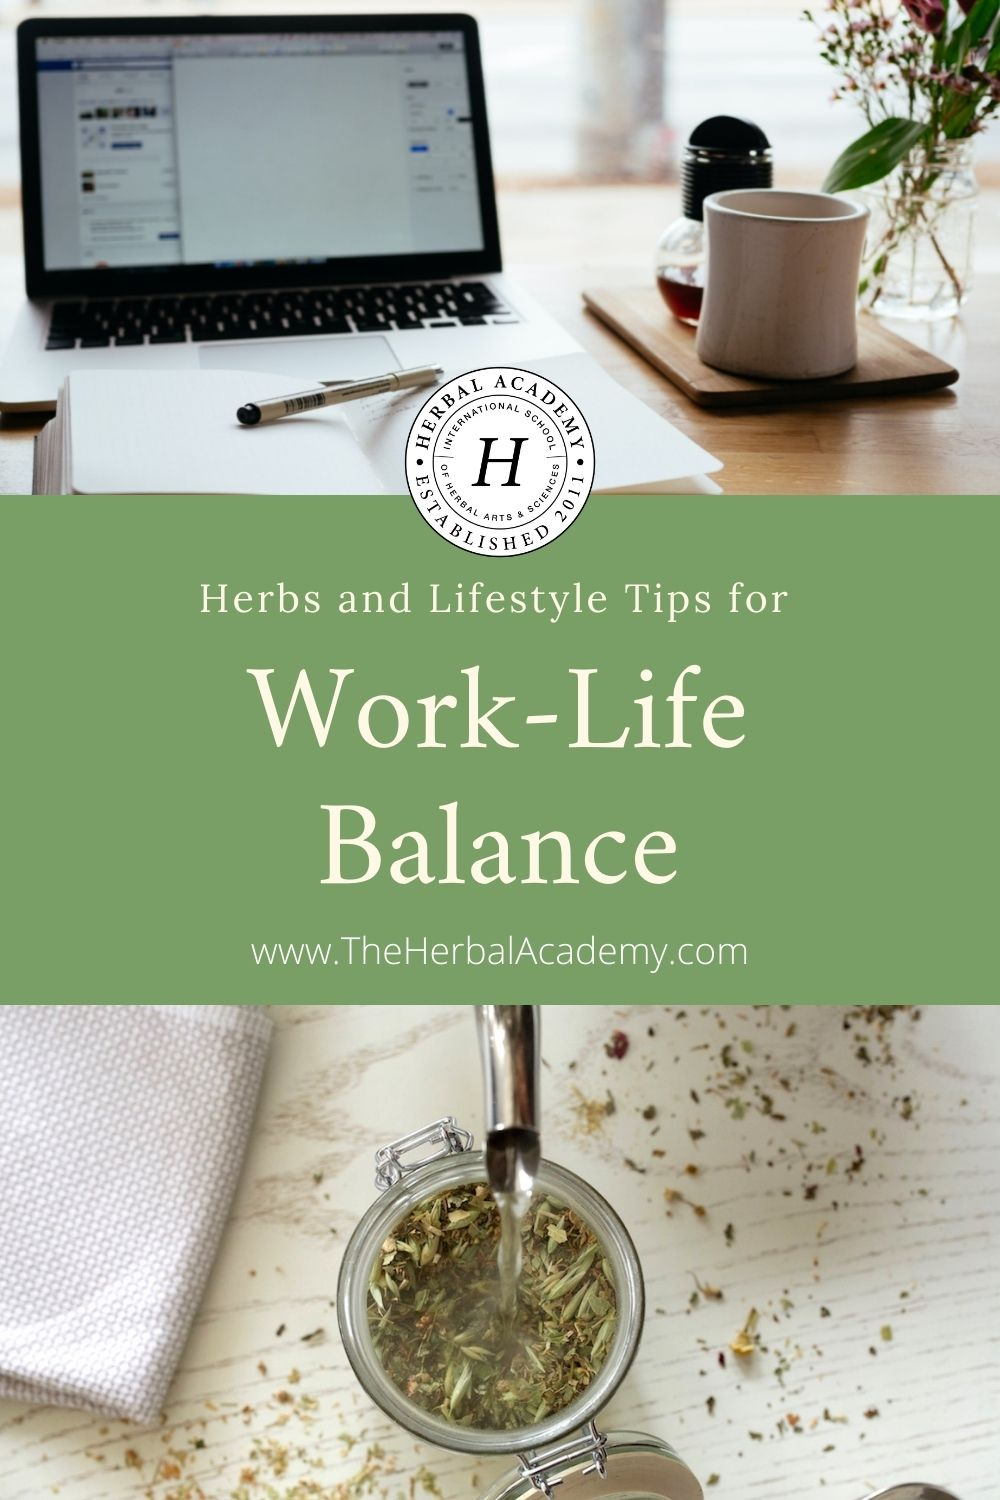 Herbs and Lifestyle Tips for Work-Life Balance | Herbal Academy | Living in challenging times can cause long-term wear and tear on the body. Here are creative solutions to ensure a healthy work-life balance!